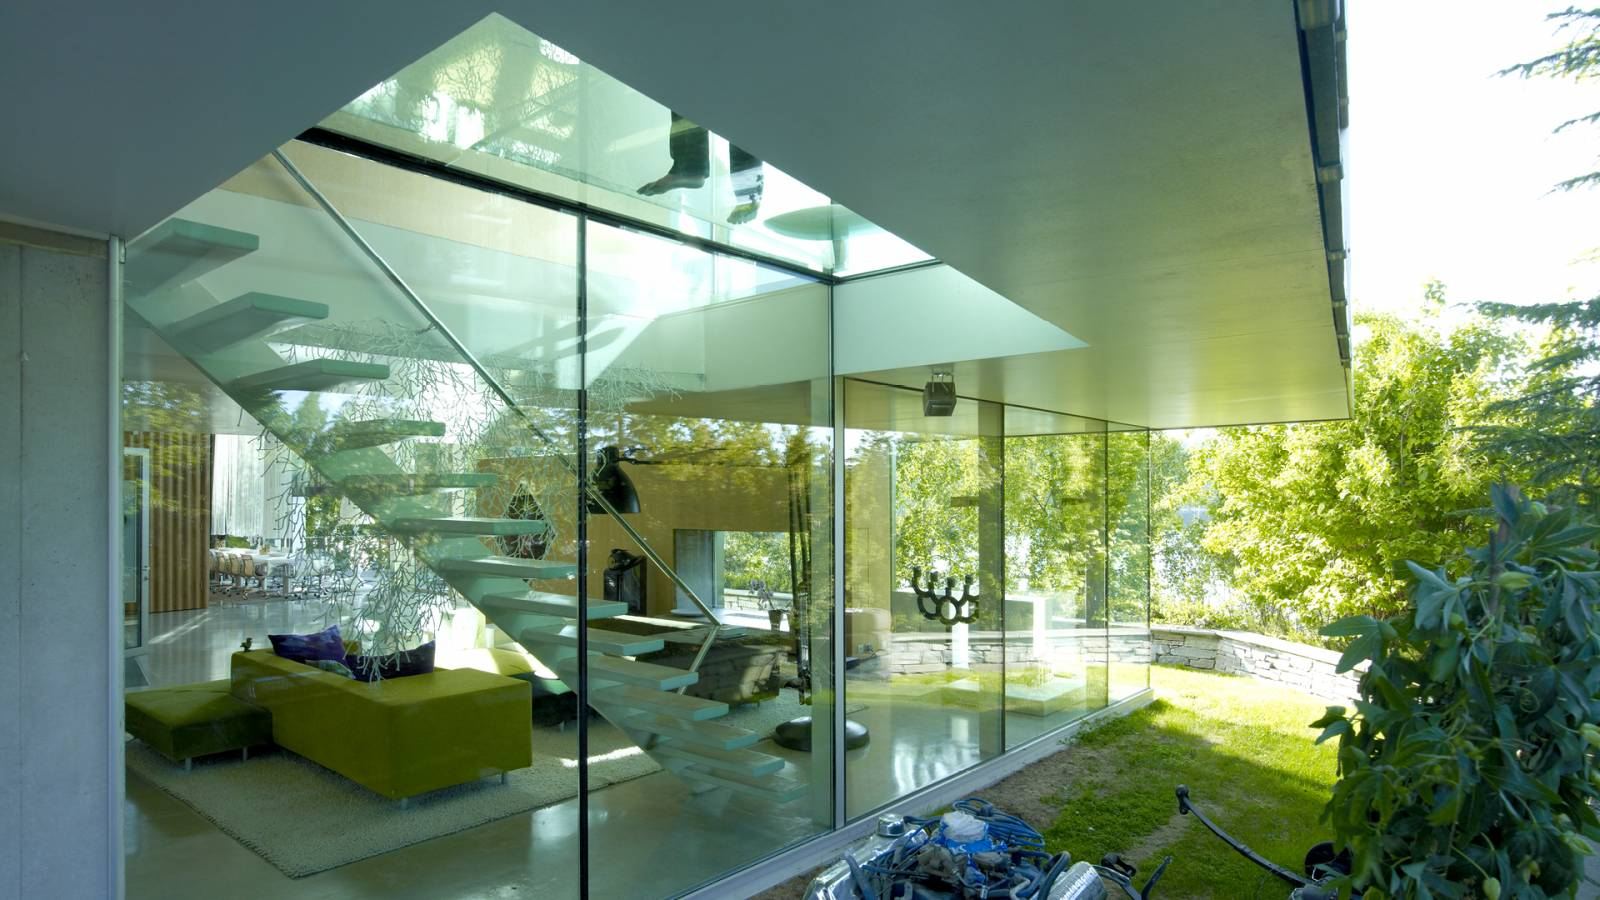 GARDEN VIEW - V-House - SPOL Architects